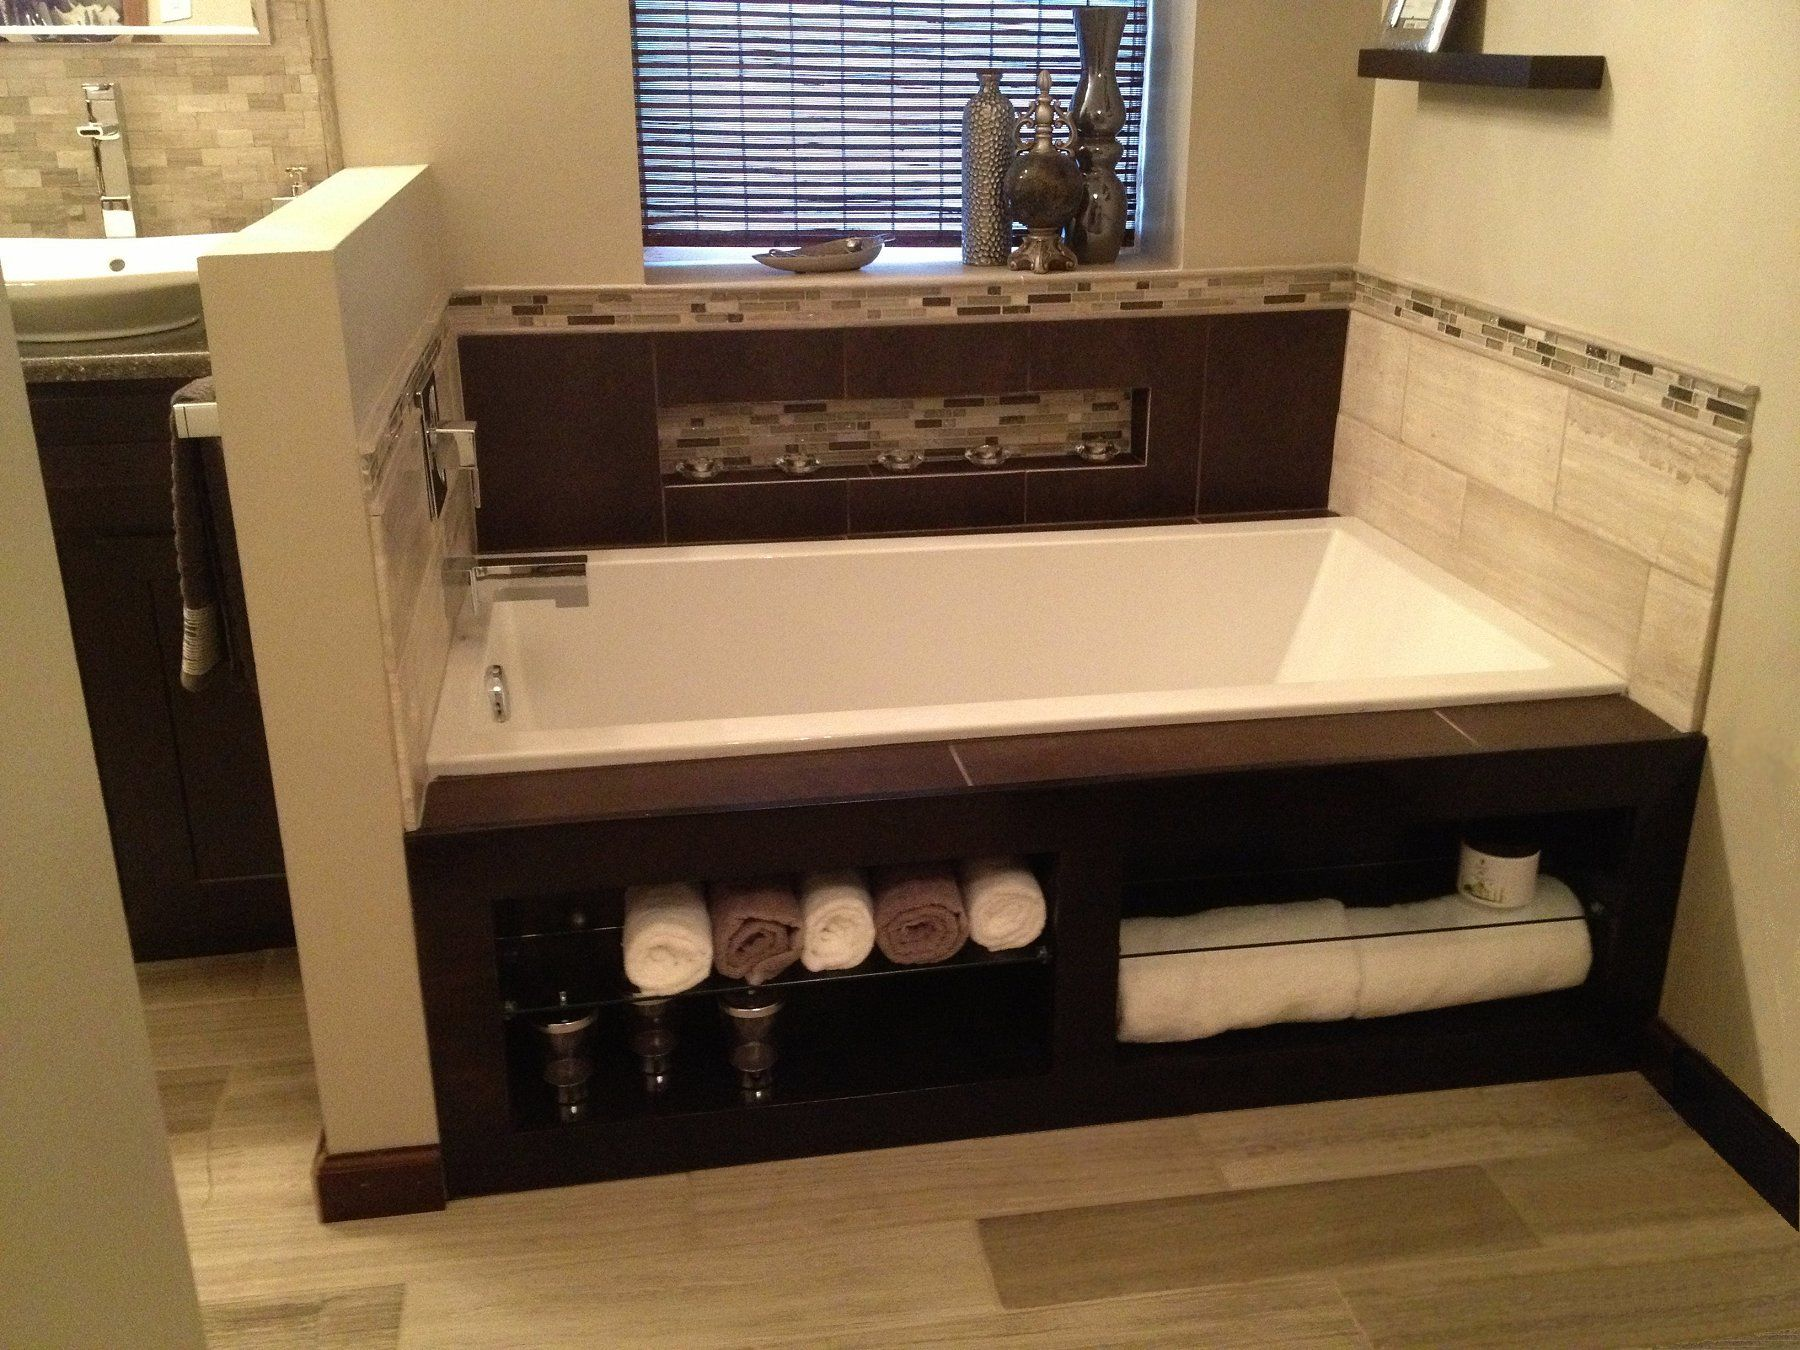 Saw this tub surround online and made it myself for much cheaper ...